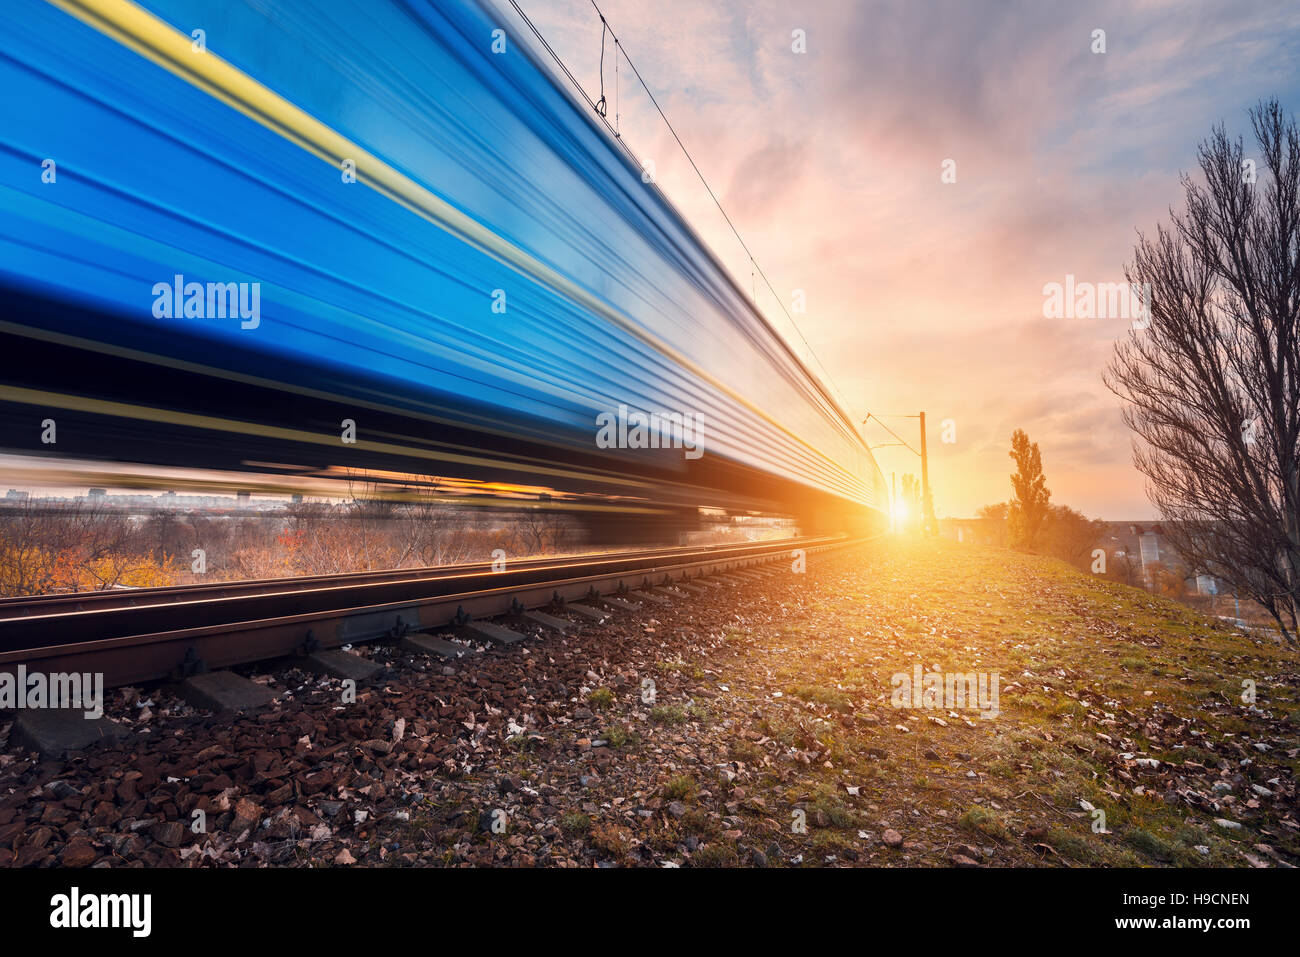 High speed blue passenger train on railroad track in motion at sunset. Blurred commuter train. Railway station. - Stock Image